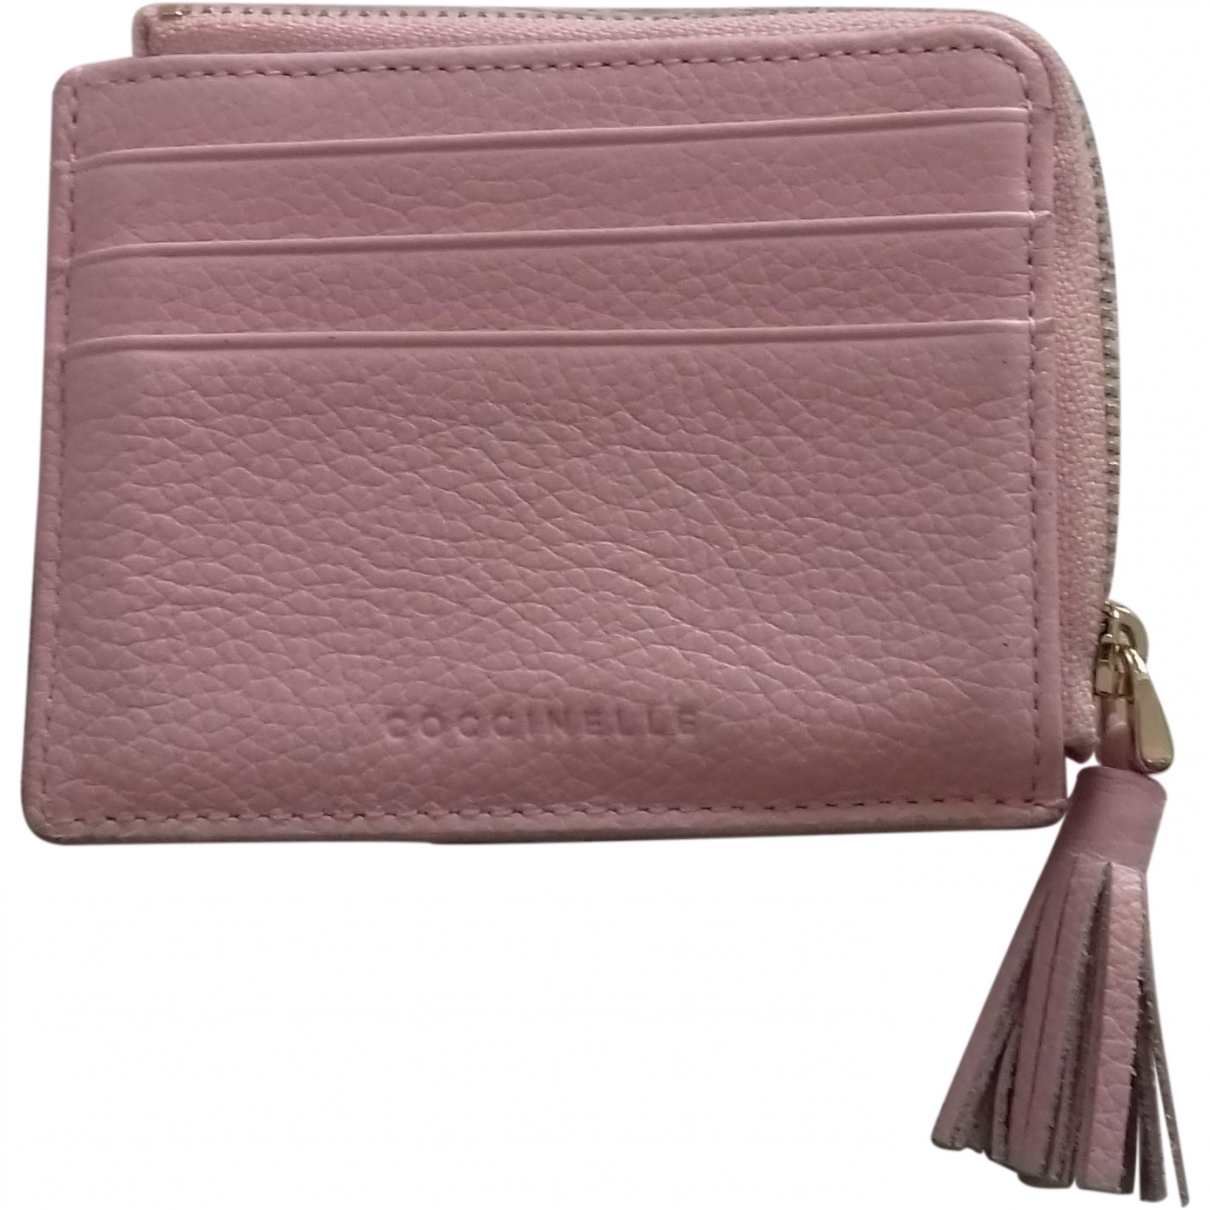 Coccinelle \N Pink Leather Purses, wallet & cases for Women \N